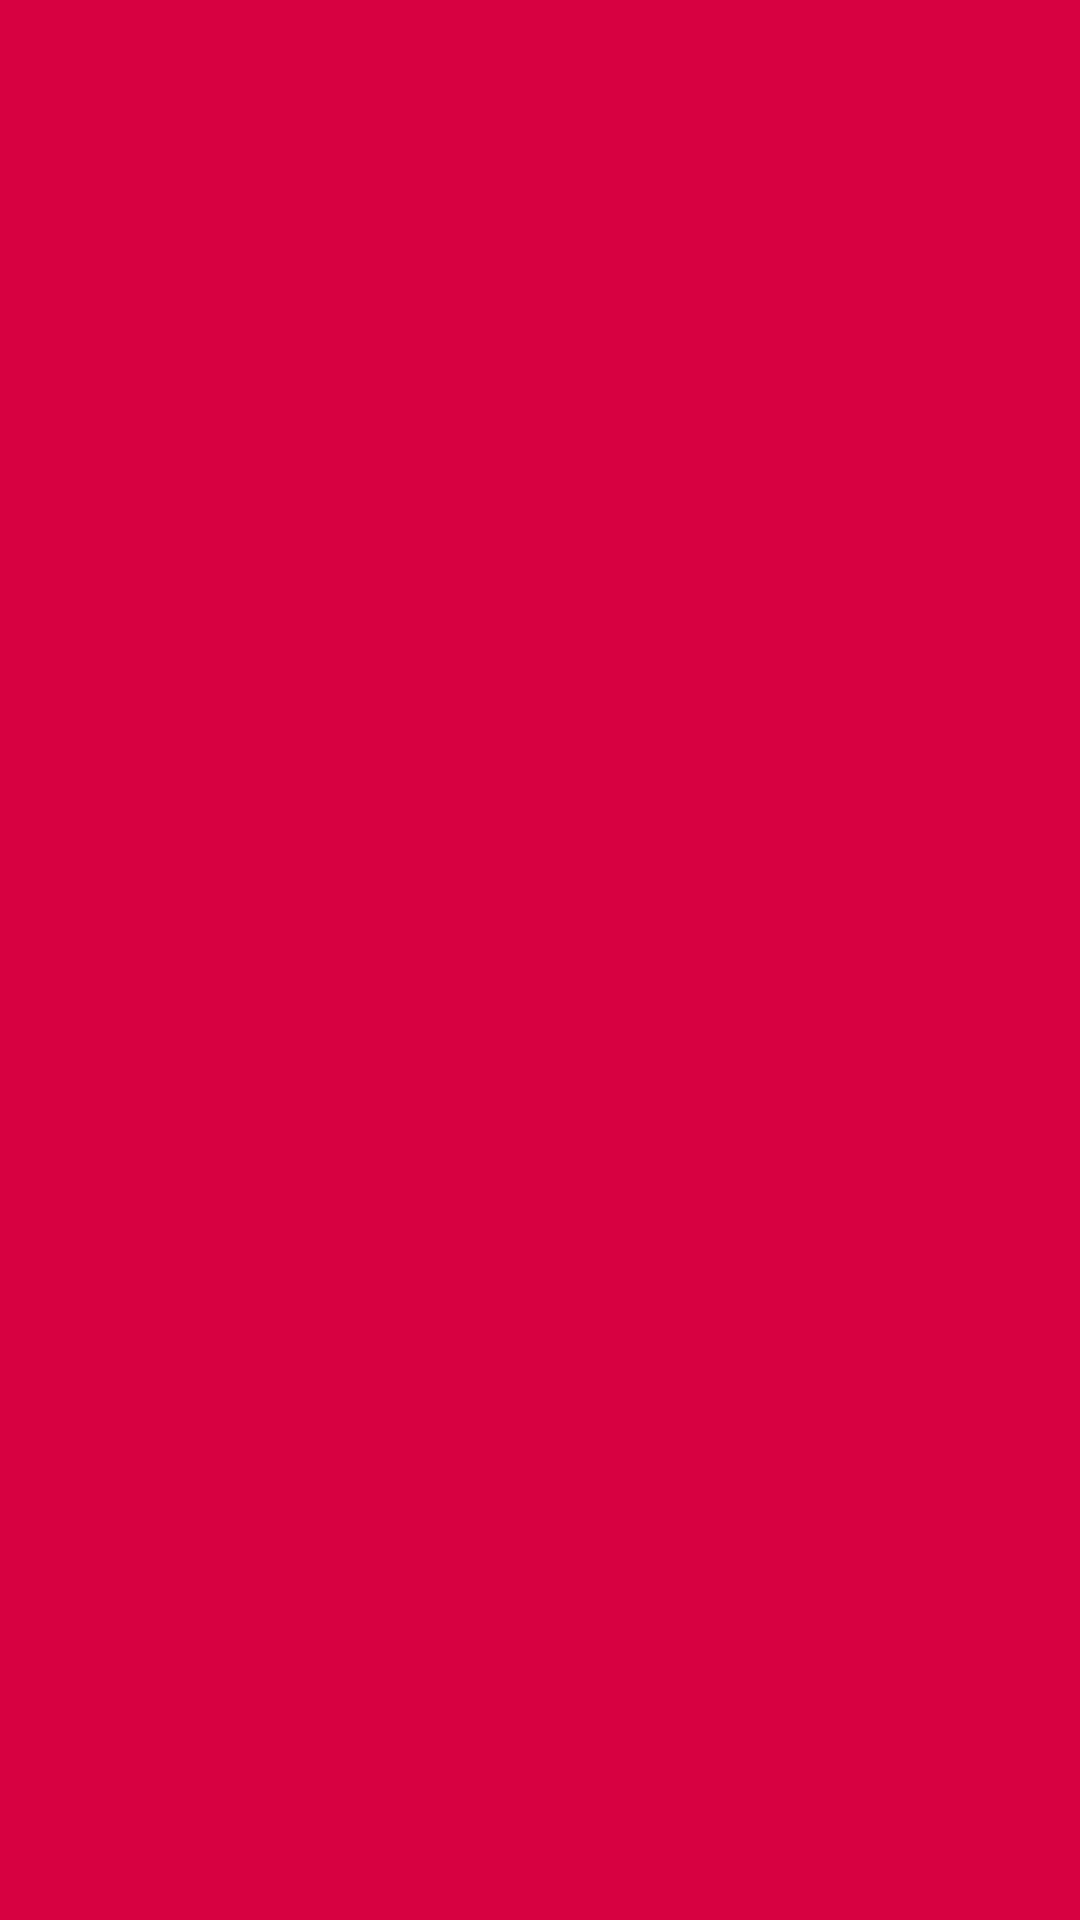 1080x1920 Rich Carmine Solid Color Background